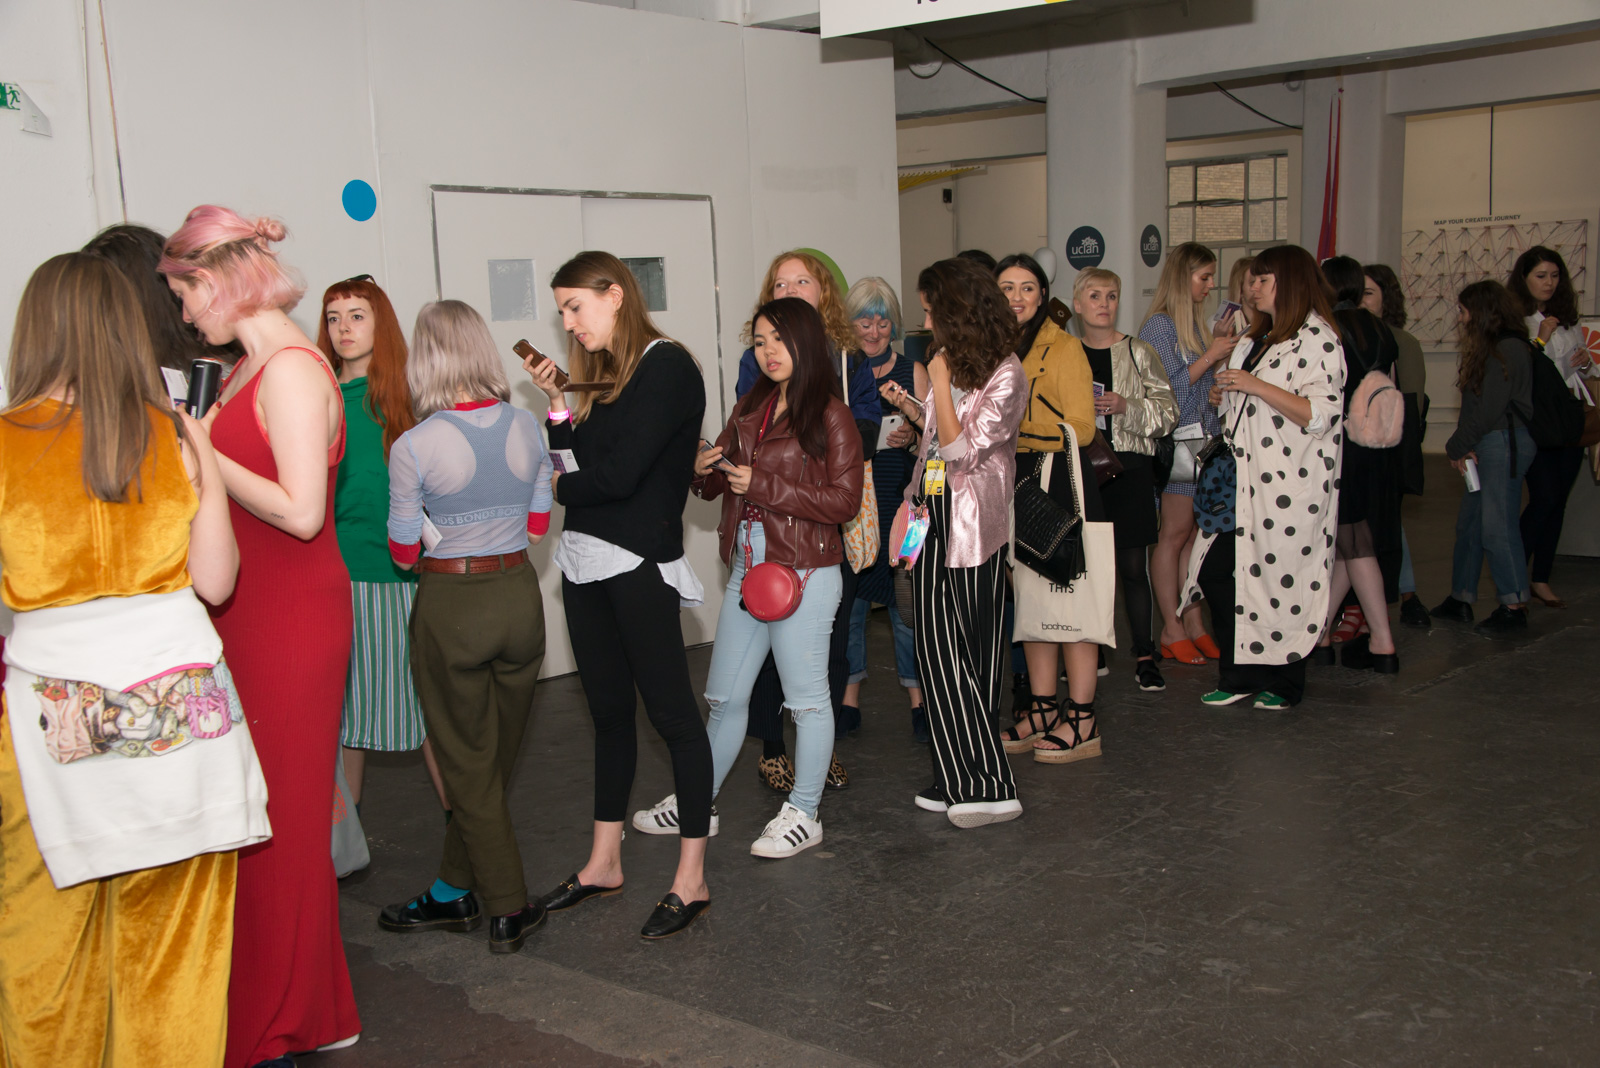 manchester crowd and catwalk 050617 1 image by tina mayr_.jpg